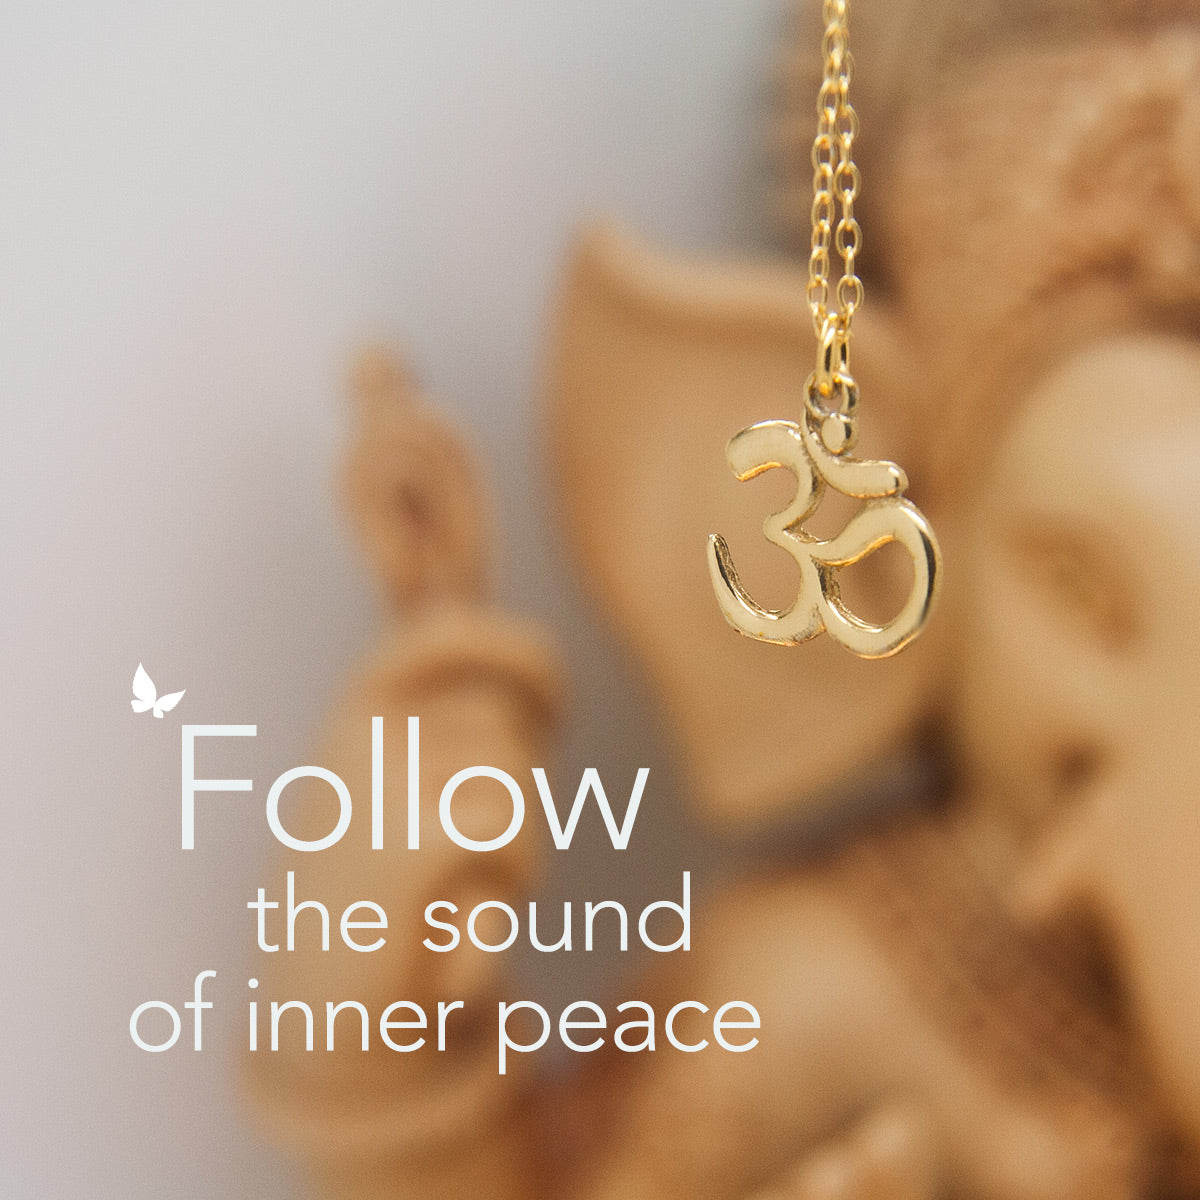 Follow the sound of inner peace